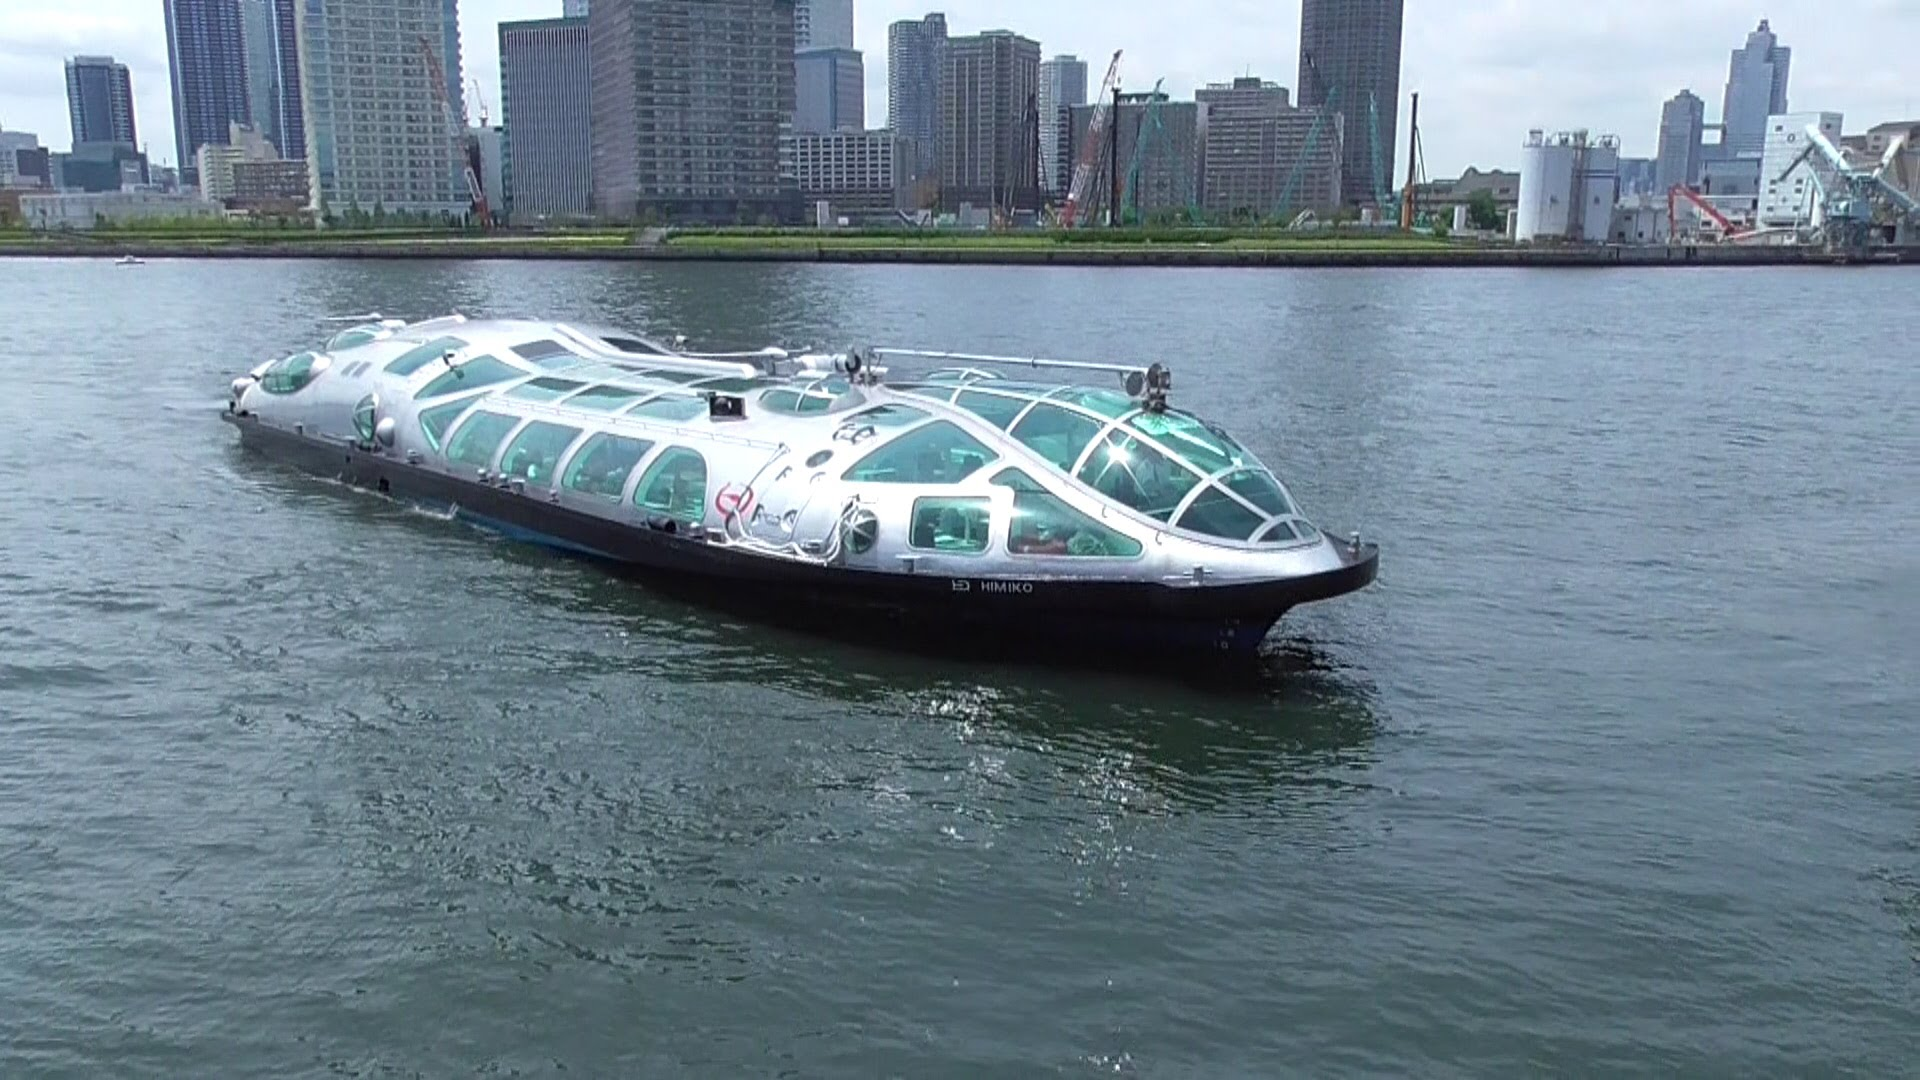 The Water Bus (水上バス)